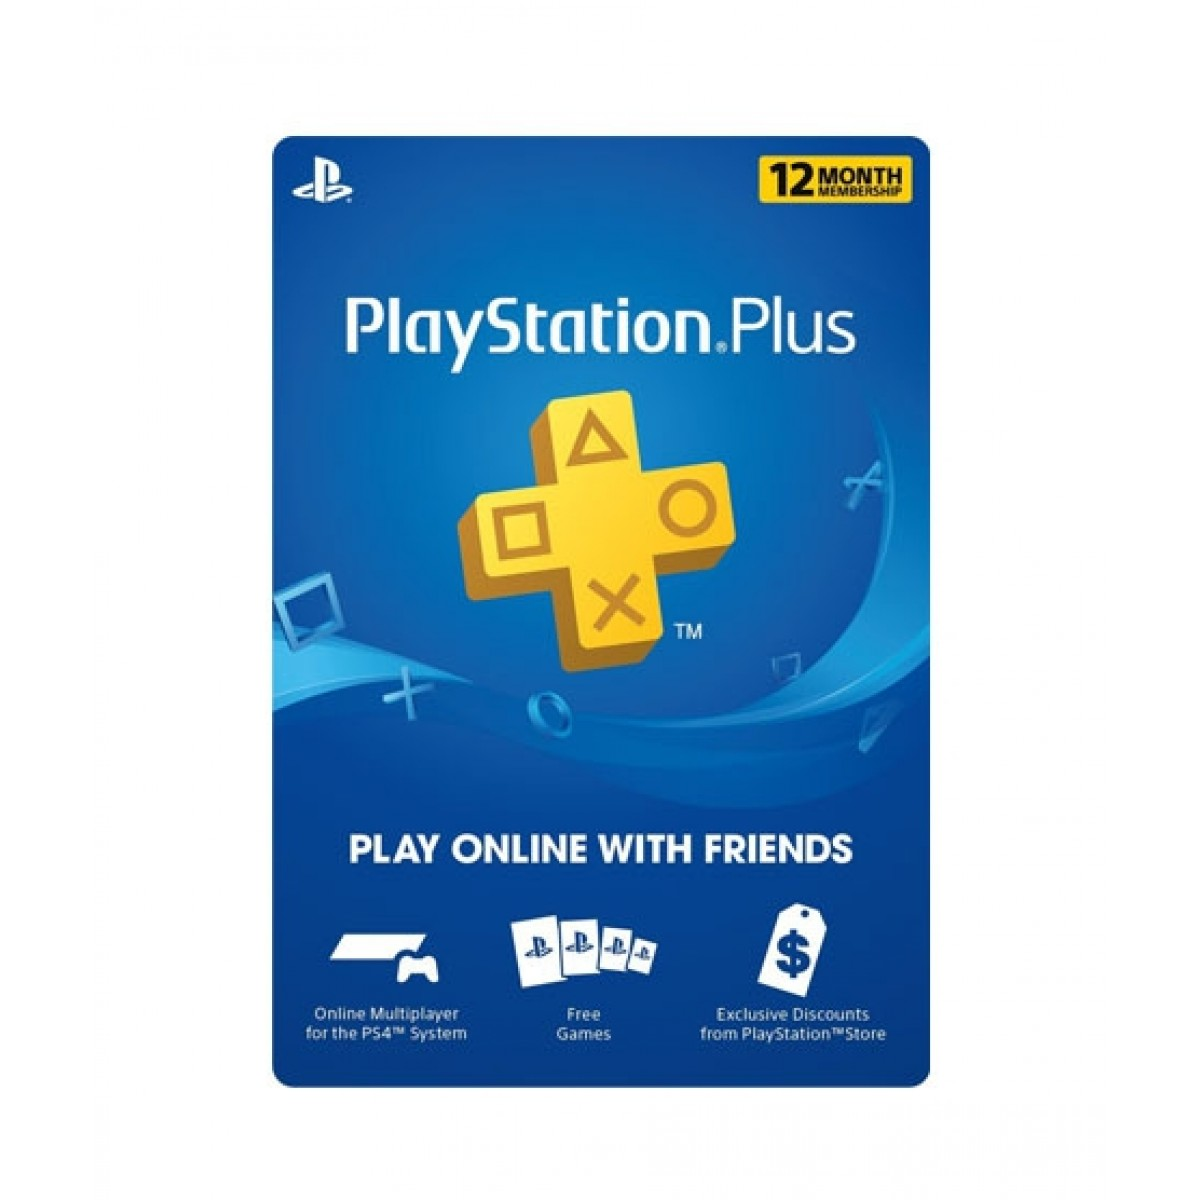 PlayStation Plus 12 Months Membership Card - PS3/PS4/PS4 Pro/PS Vista -  Email Delivery